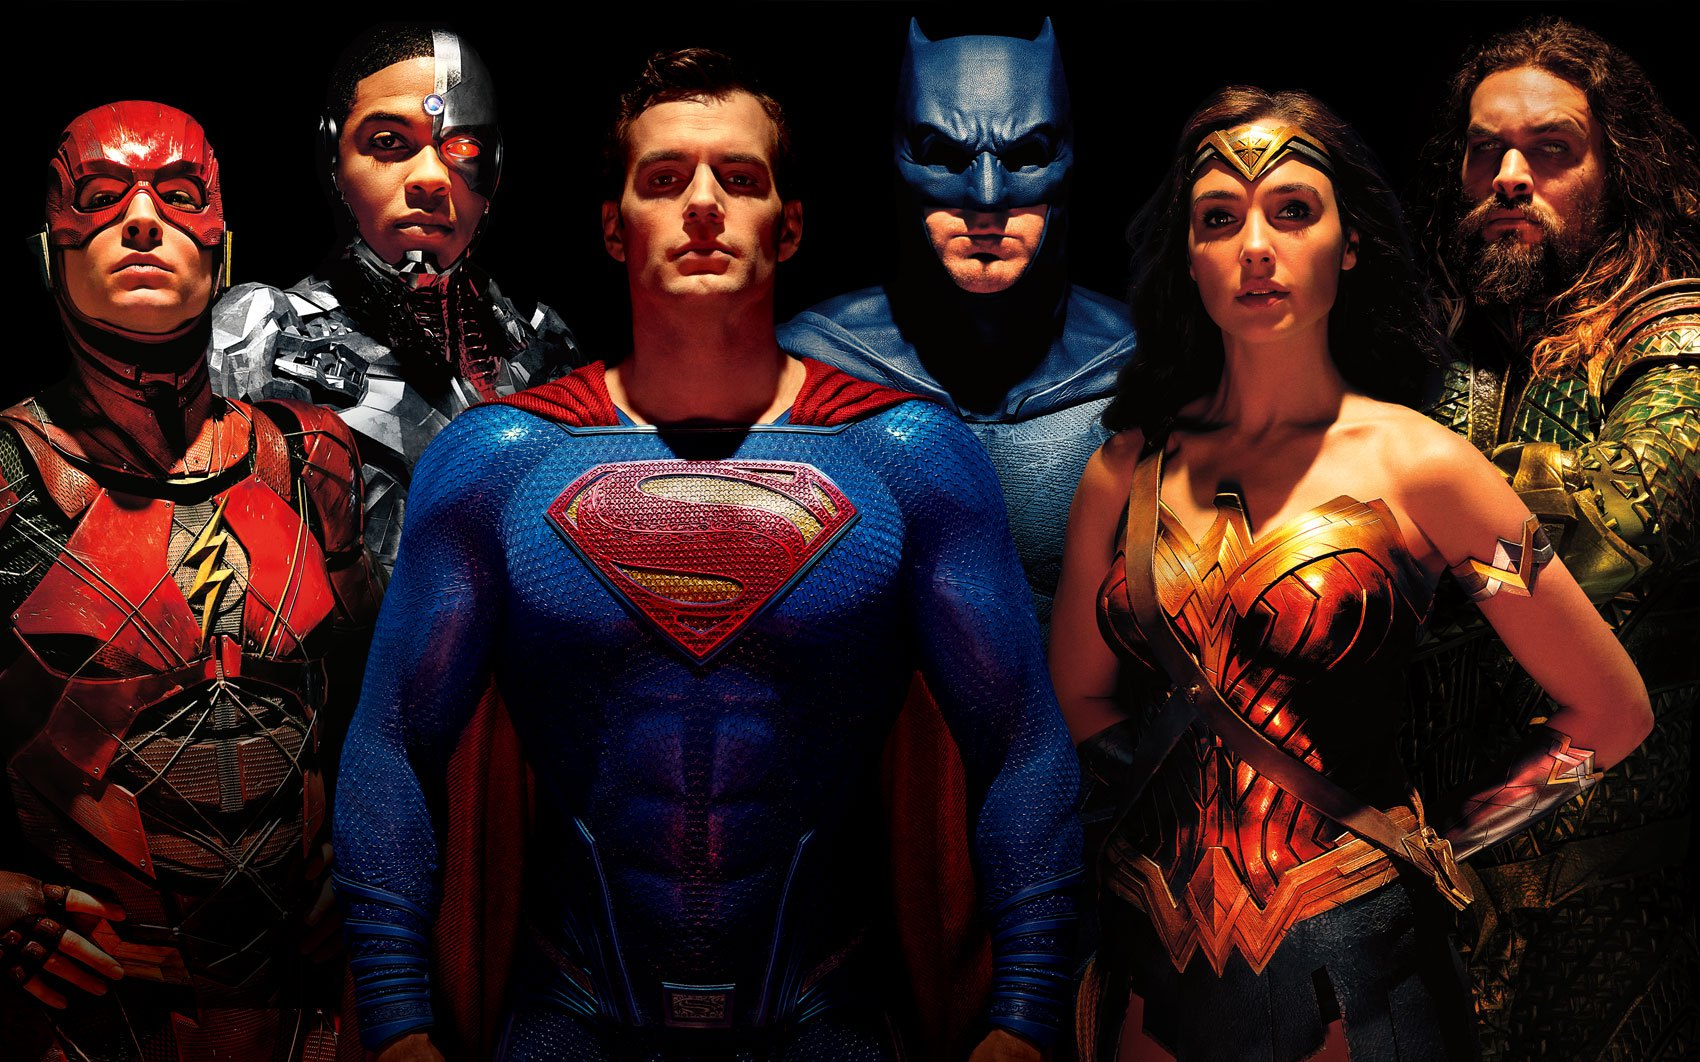 ¡Zack Snyder lanzará Snyder Cut de Justice League en HBO Max!